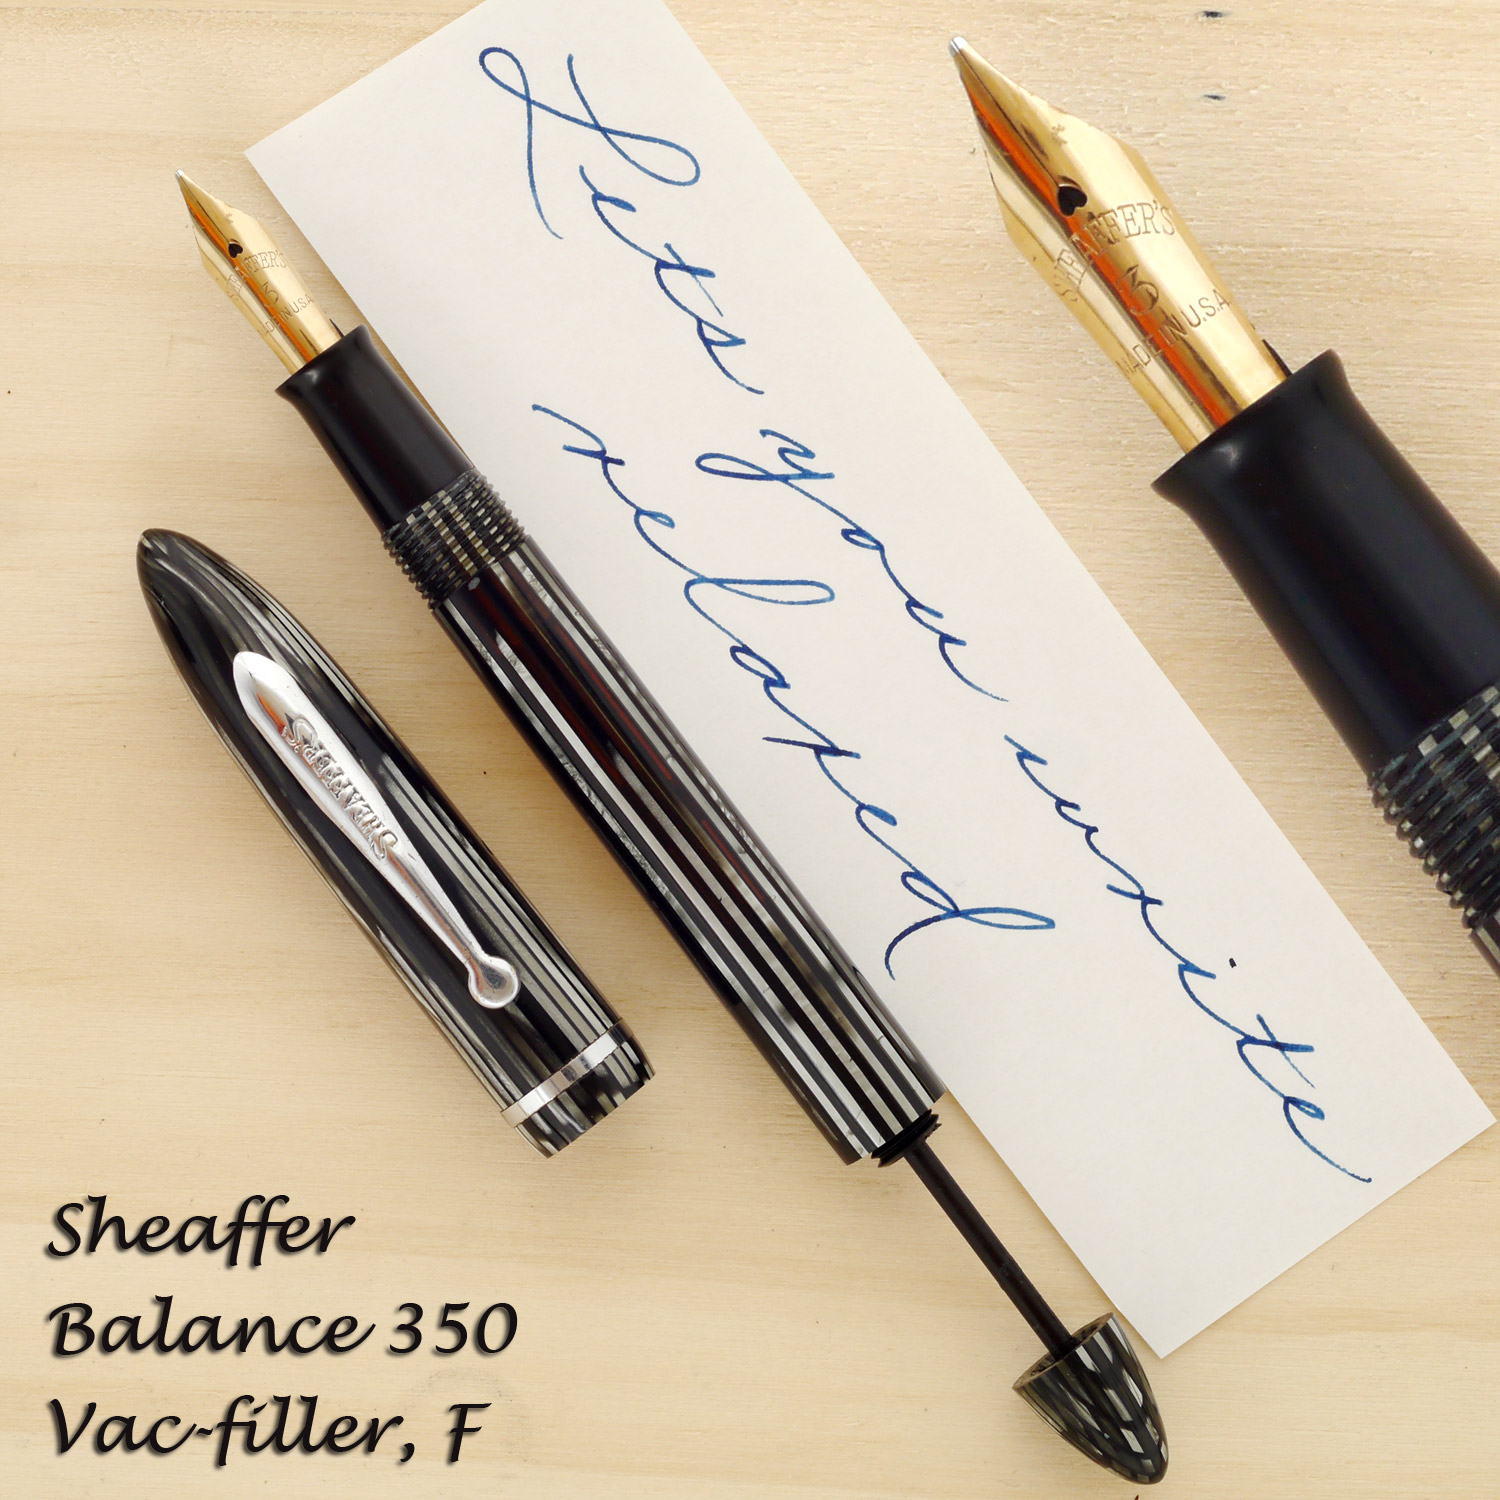 Sheaffer Balance 350, Vac